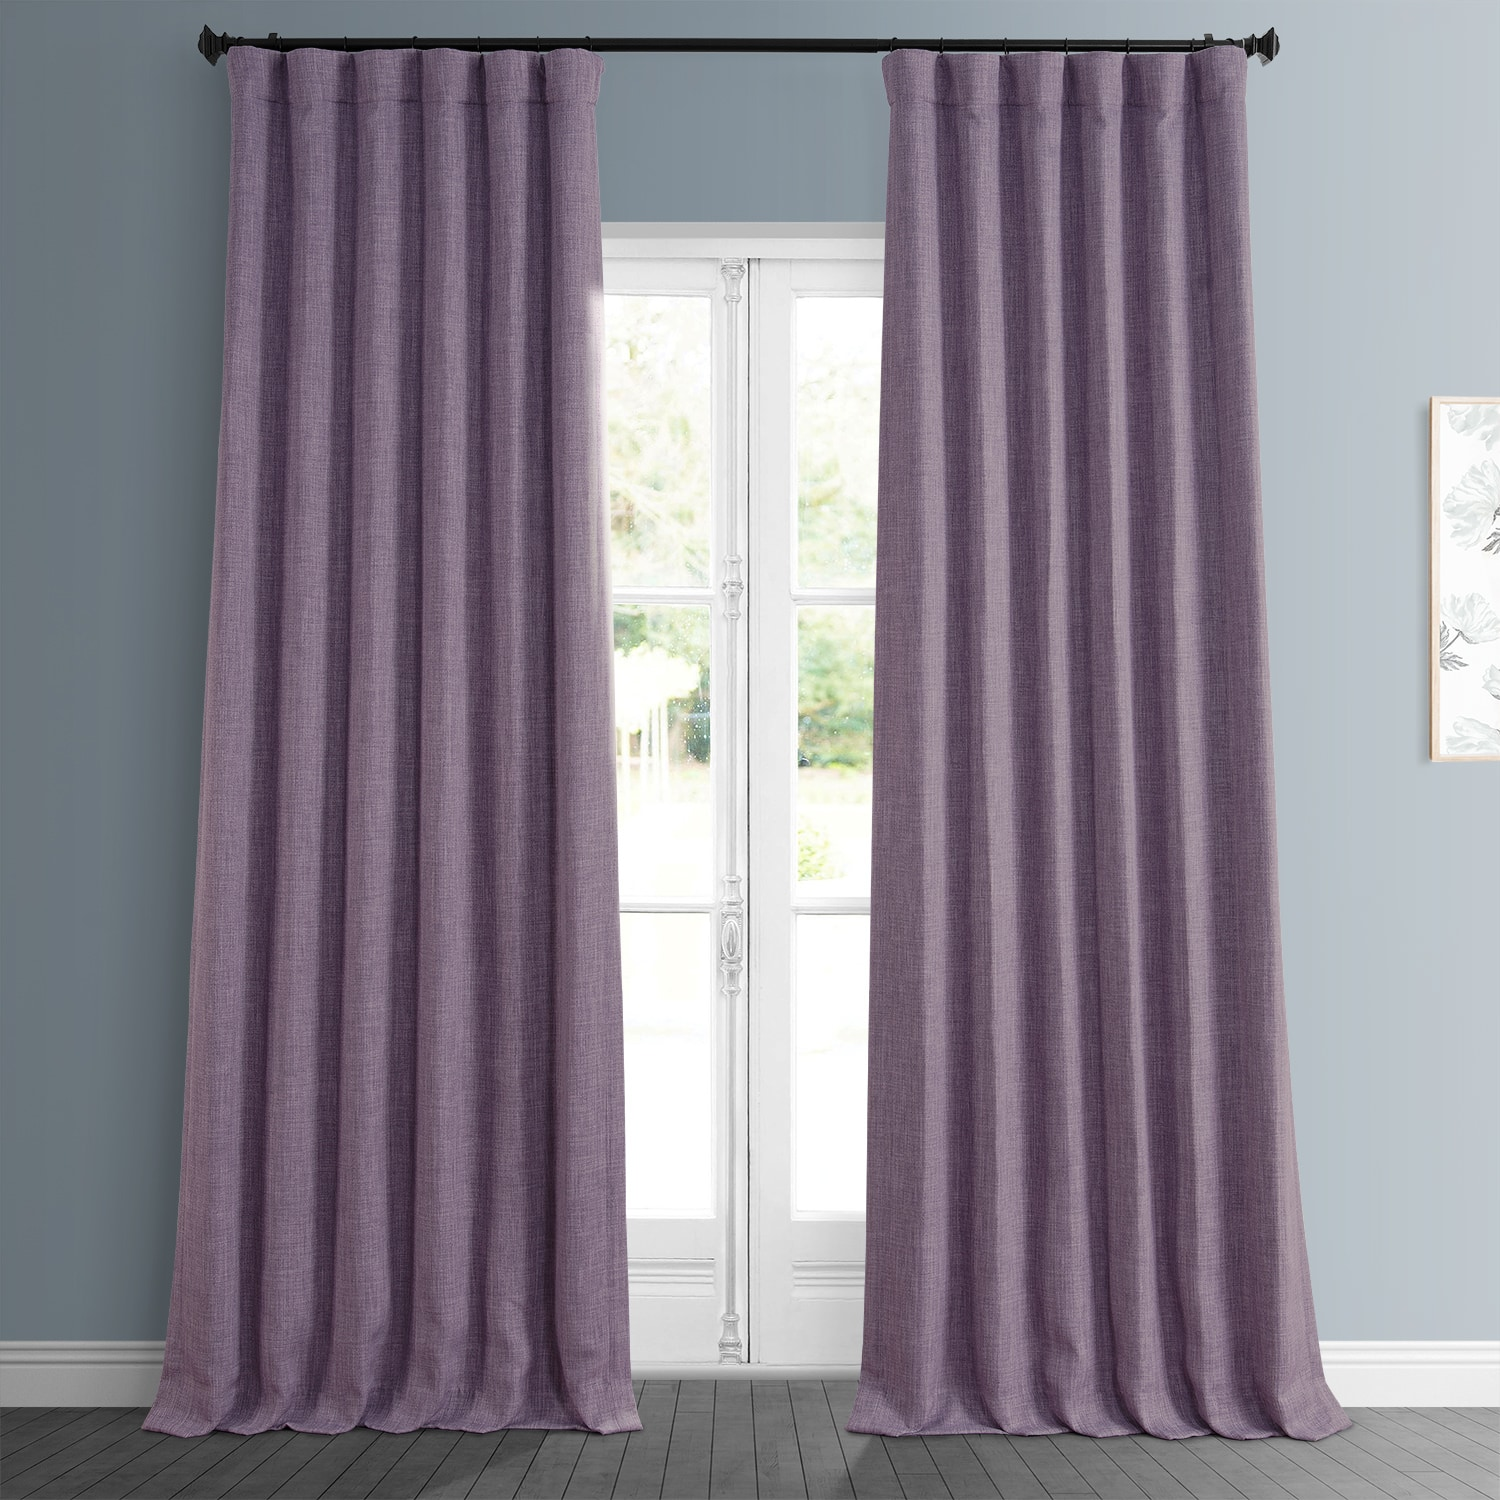 Iris Faux Linen Blackout Room Darkening Curtain